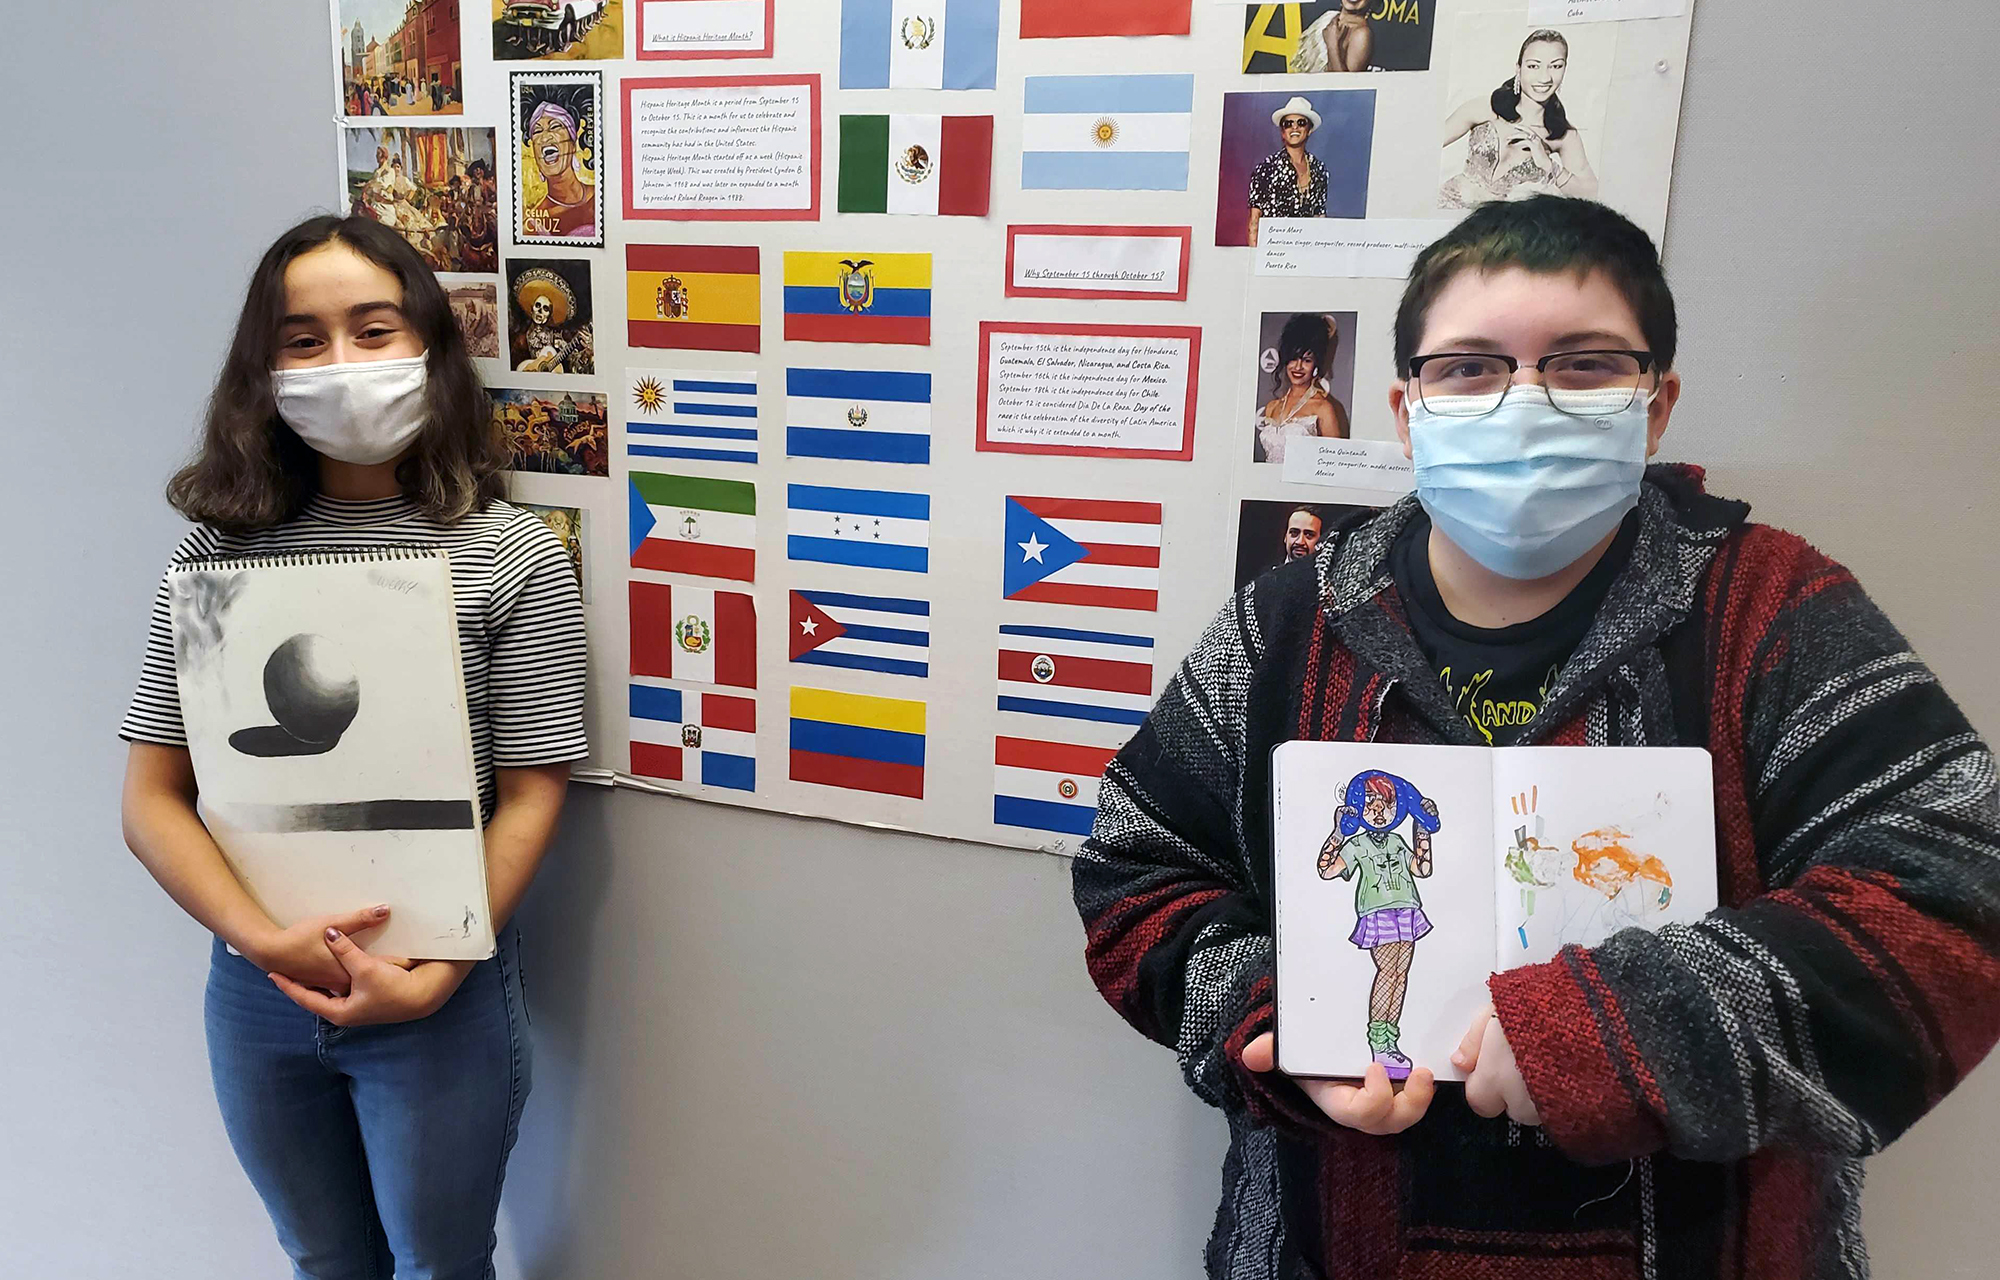 Two Quest Forward Academy Omaha students stand together displaying drawings from their college-level course at Bellevue University.